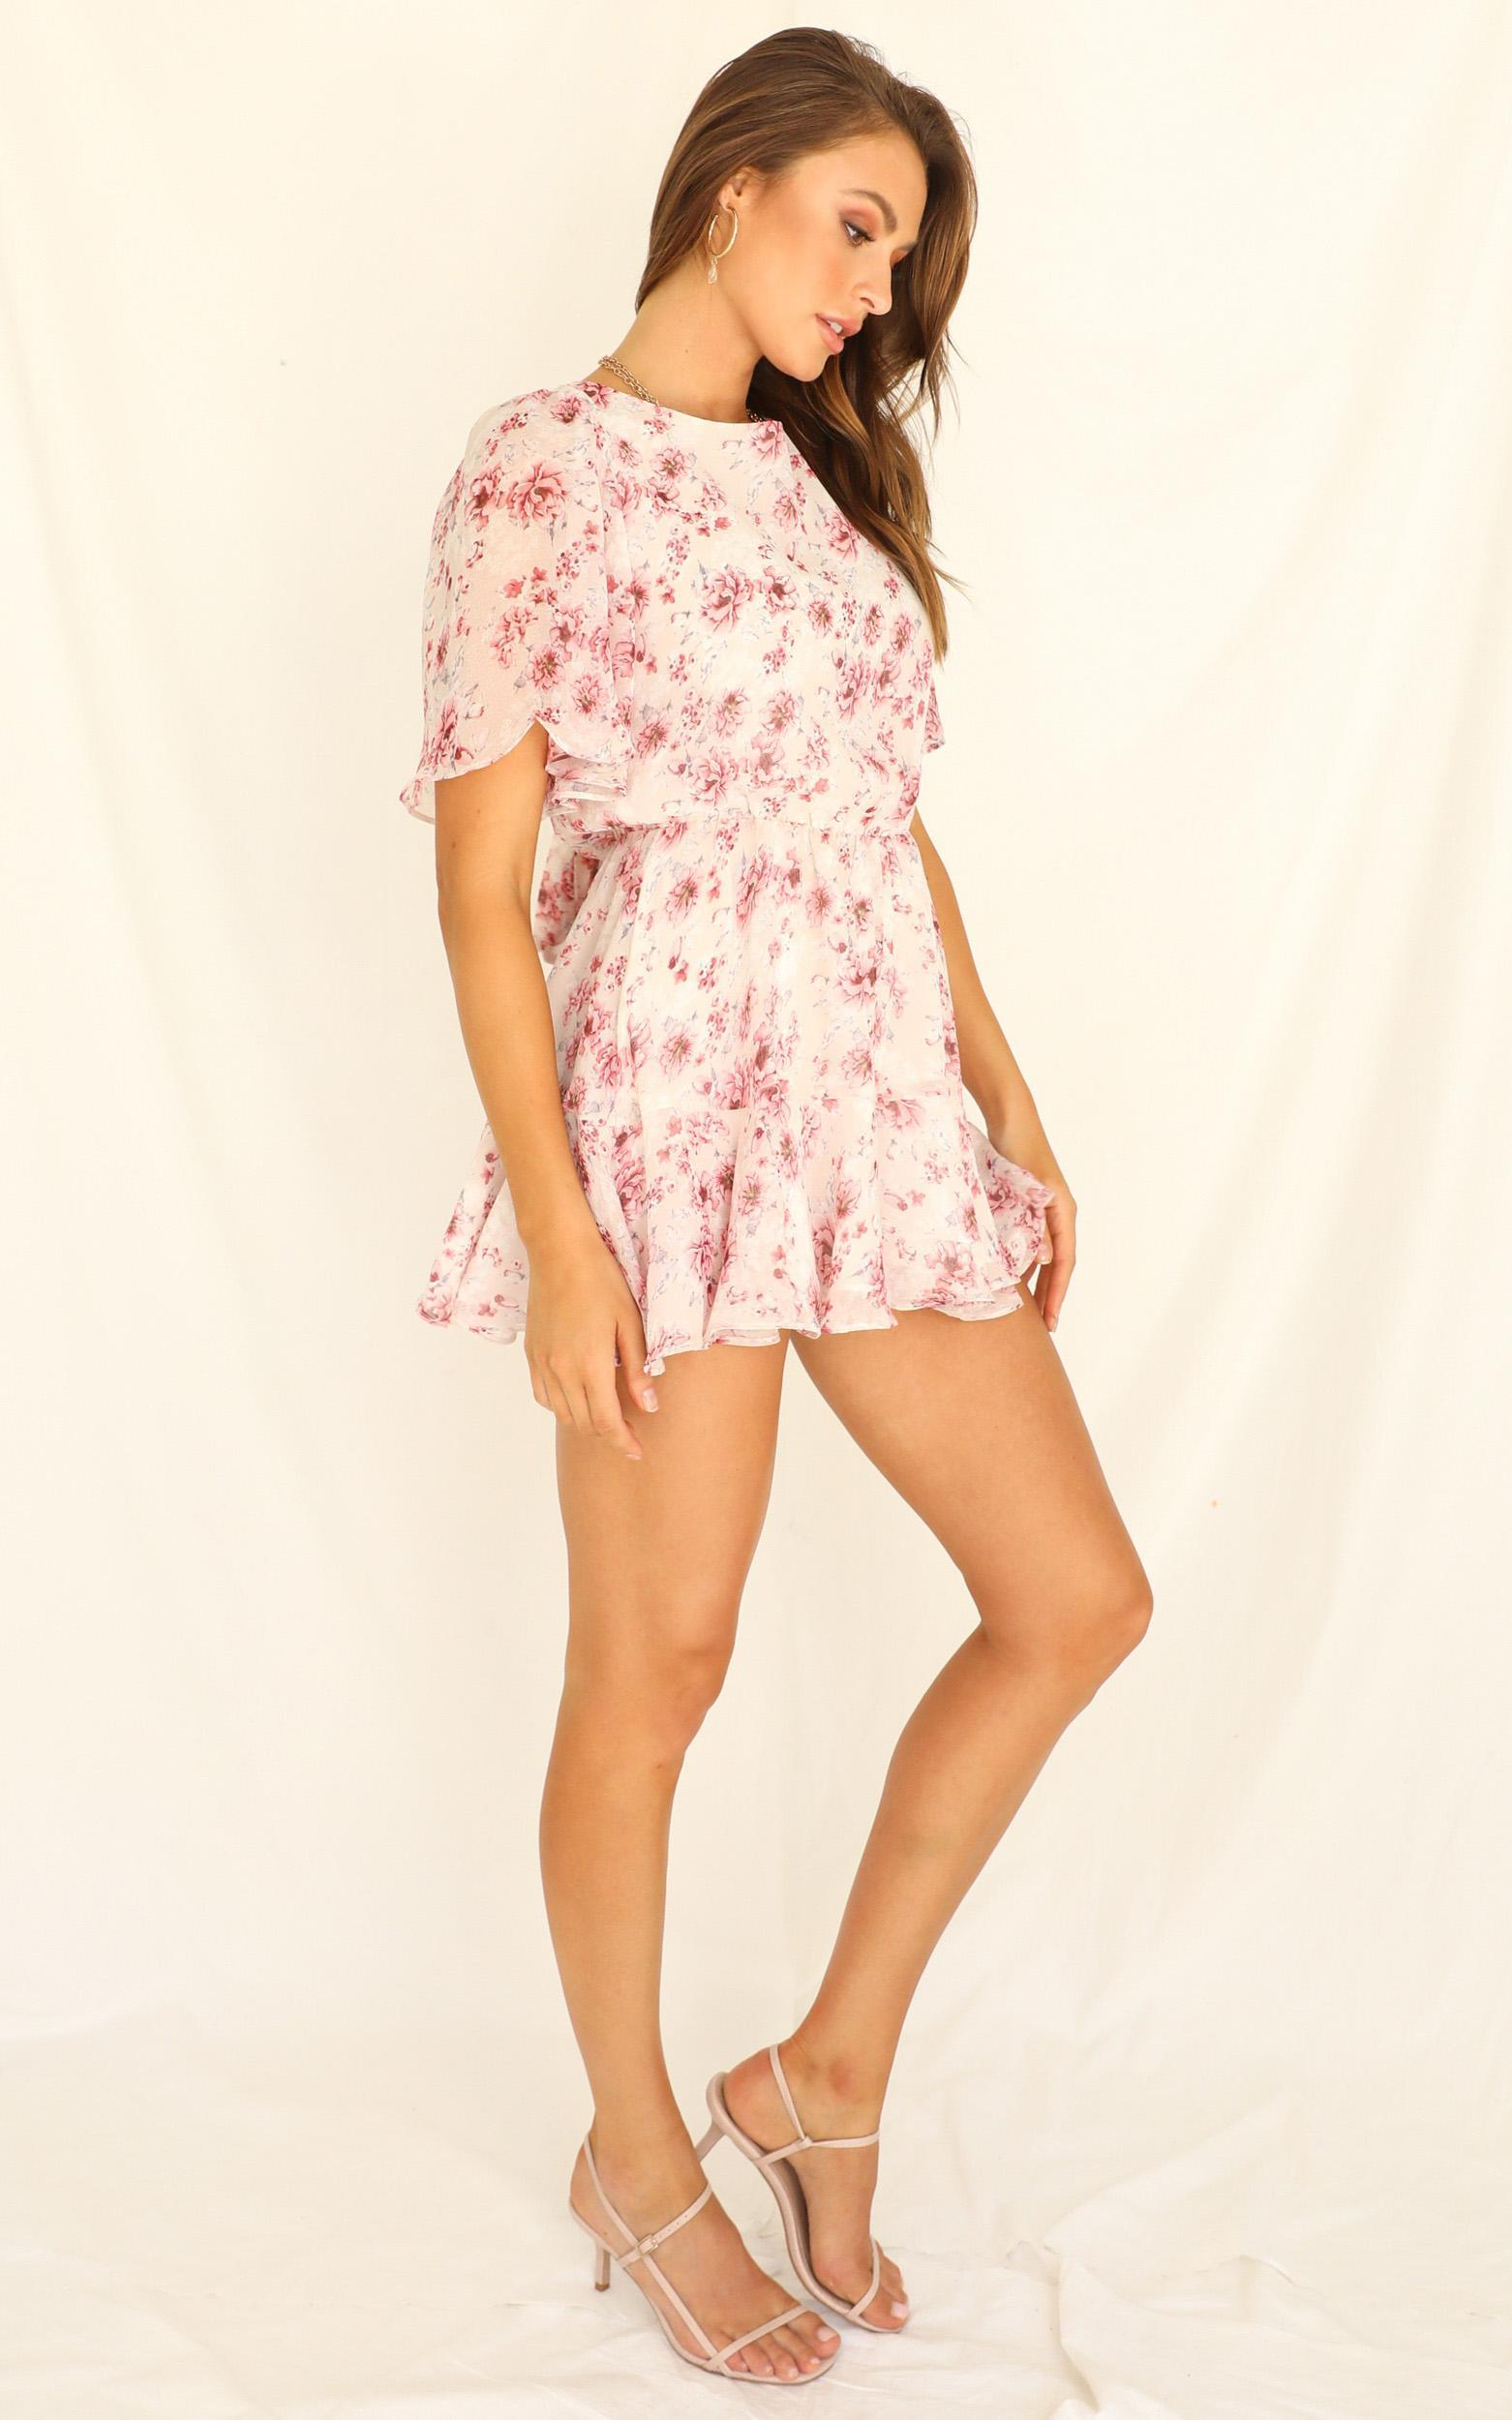 Getaway Island Playsuit in  white floral - 20 (XXXXL), White, hi-res image number null